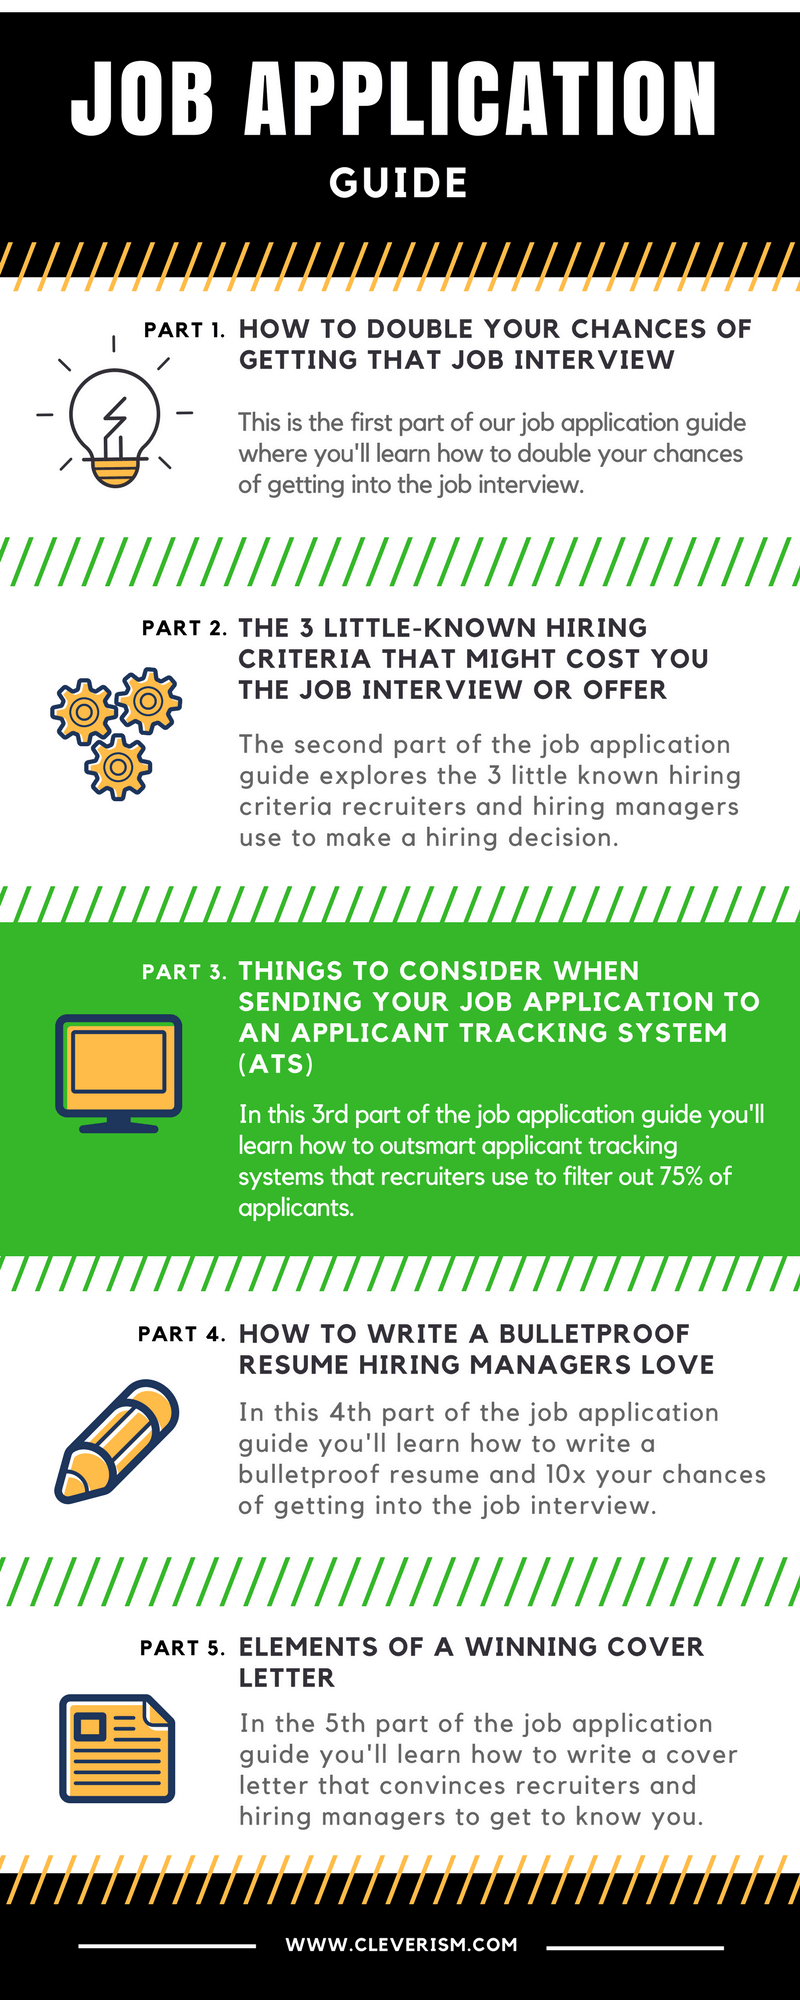 Job Application Guide Things To Consider When Sending Your Job